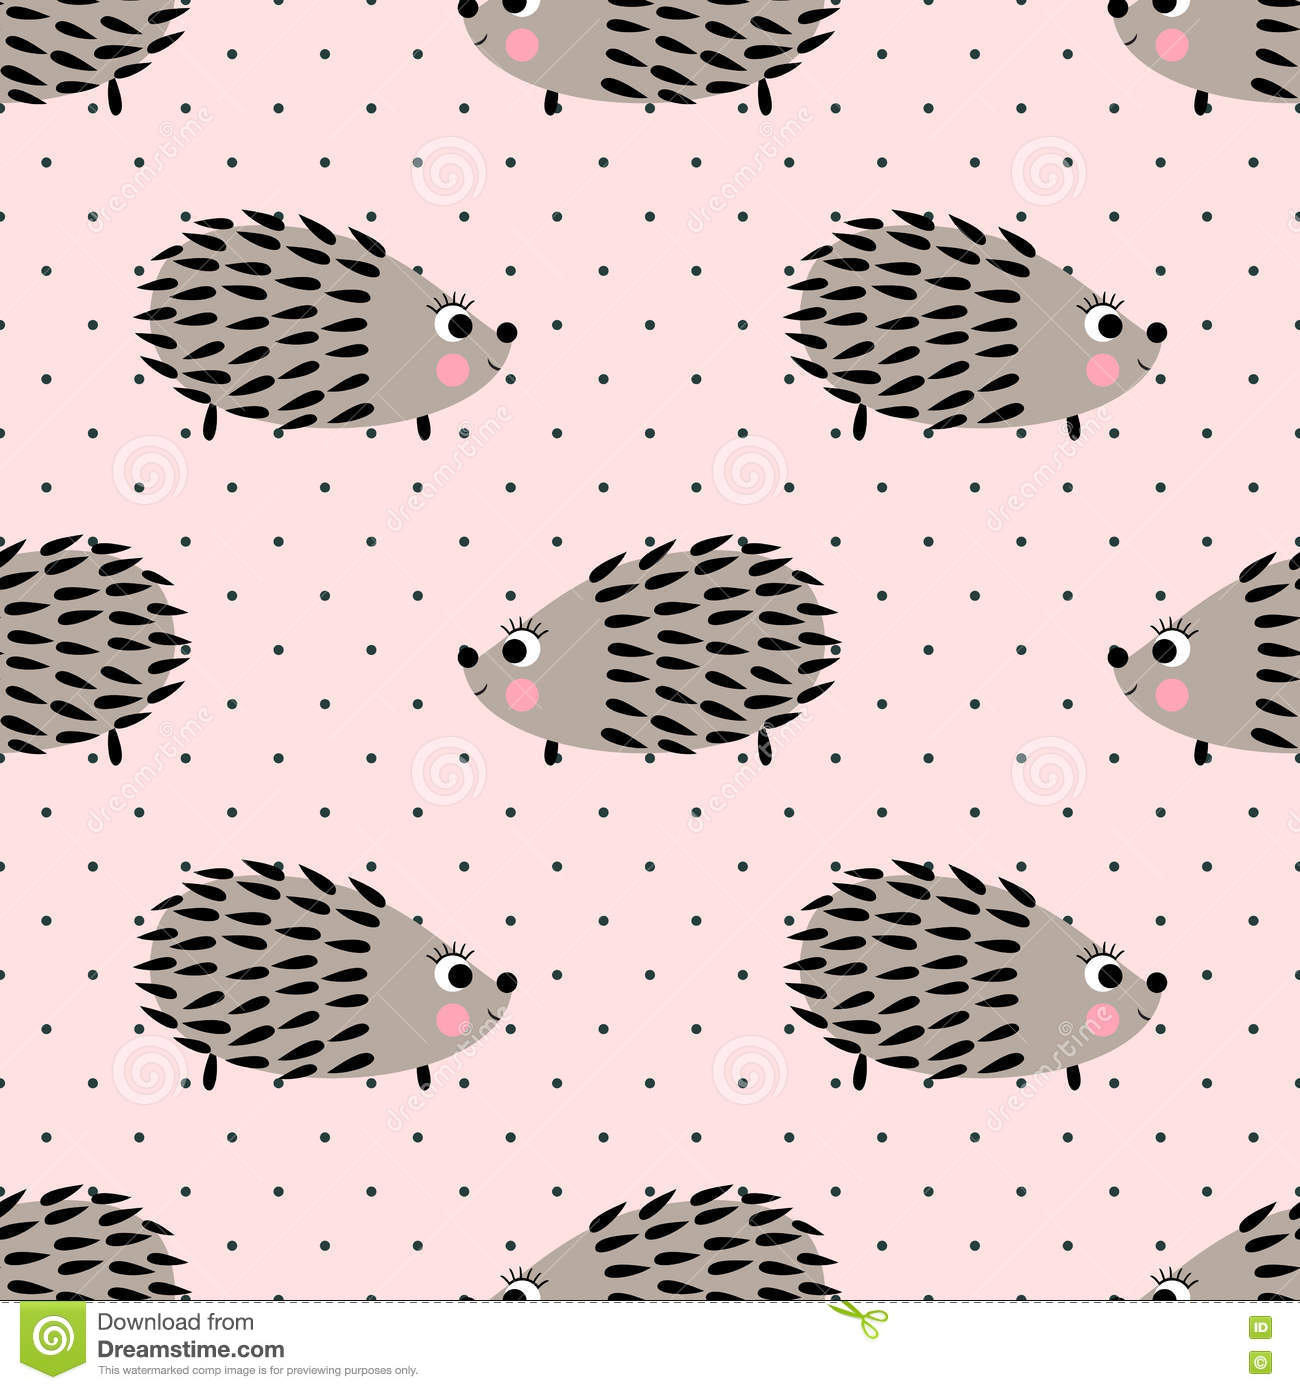 Hedgehog seamless pattern on pink polka dots background. Cute cartoon animal background.